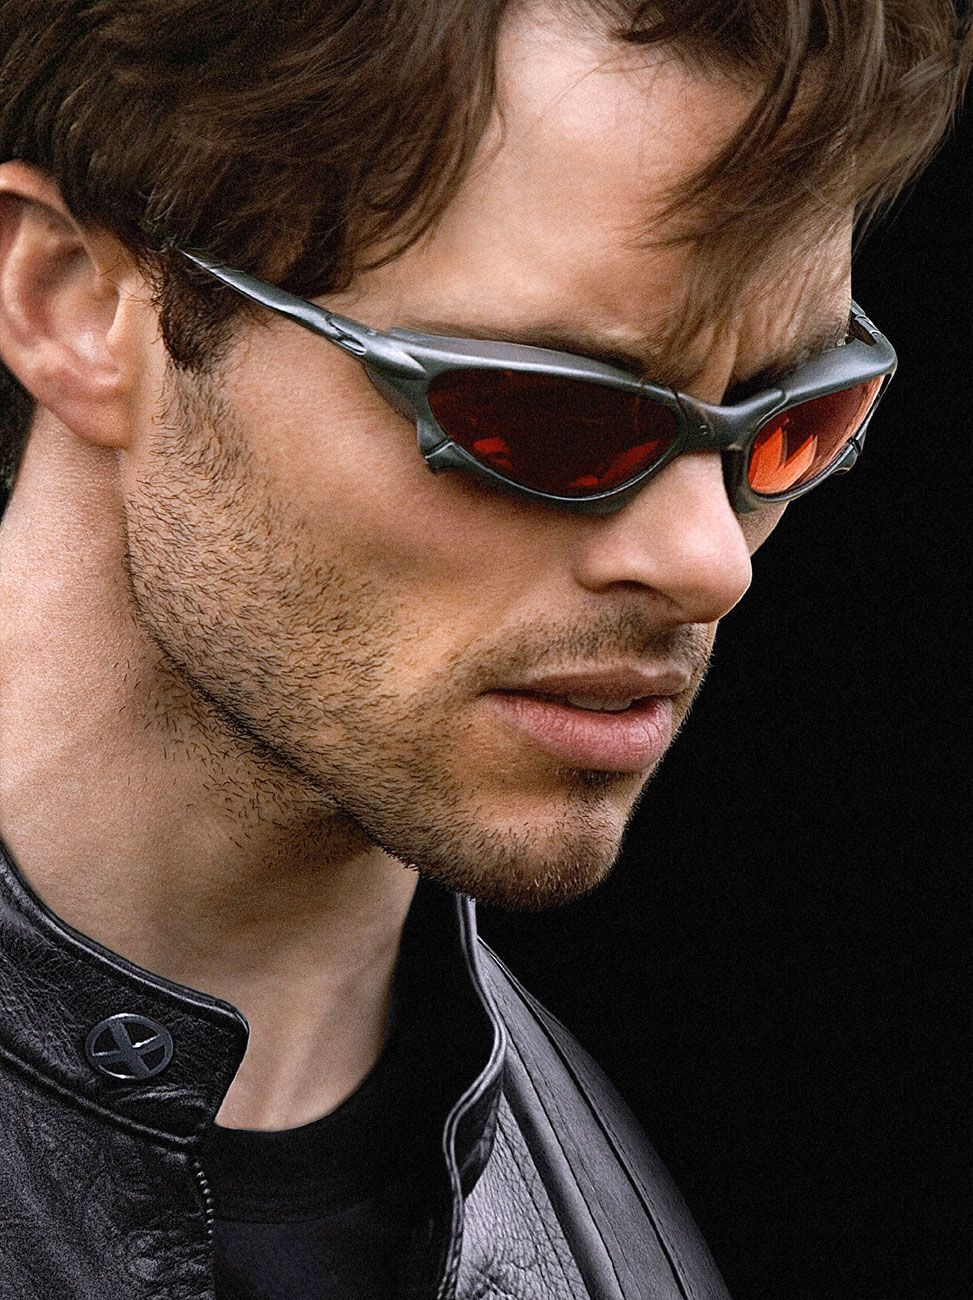 f70214072 scott summers - Google Search | Cyclops Summer Scott Grey | Oakley ...